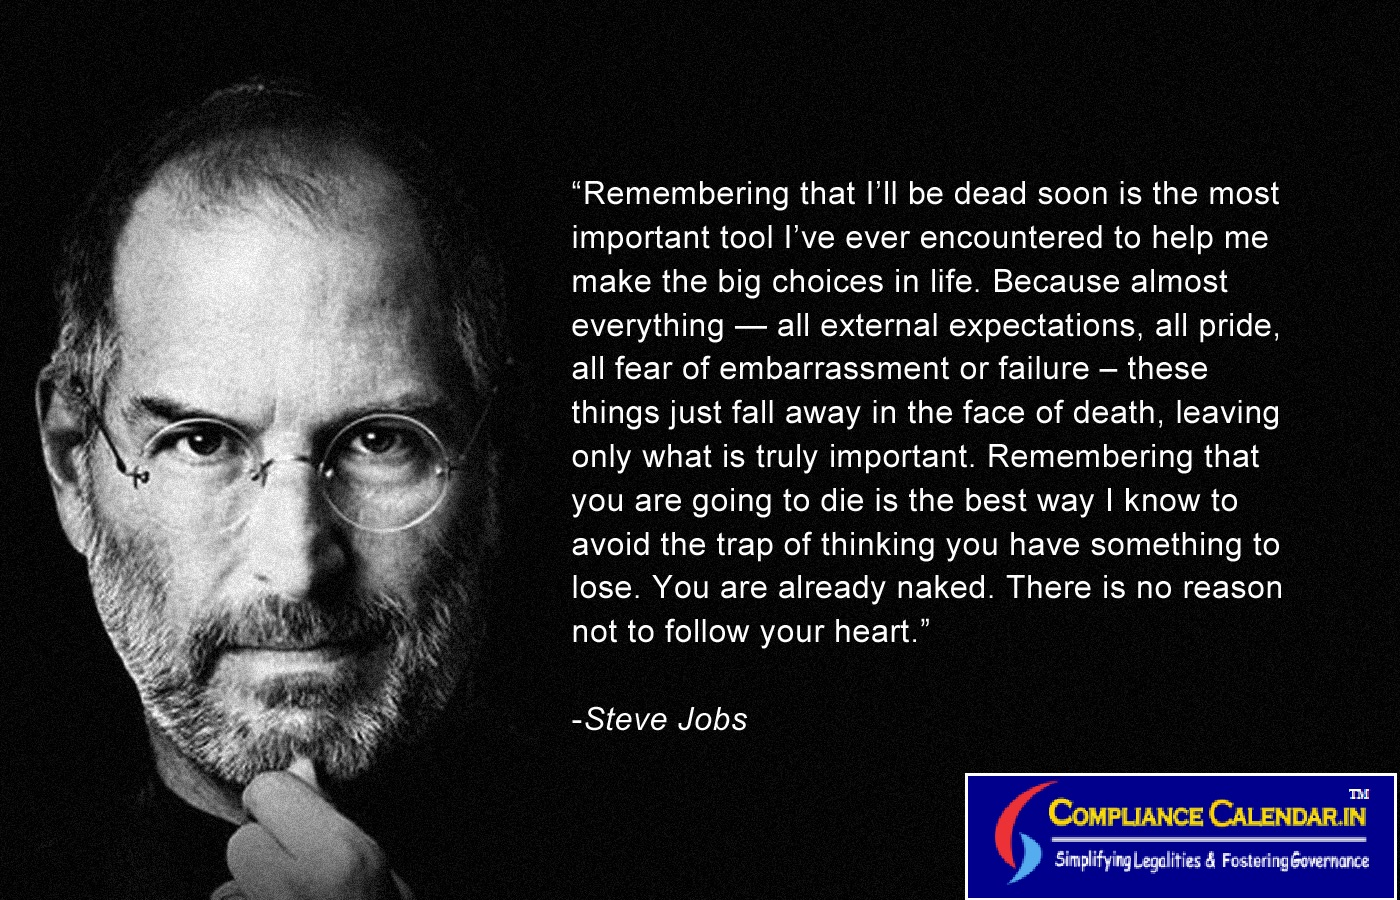 Steve Jobs is remembered for being tremendously outspoken.